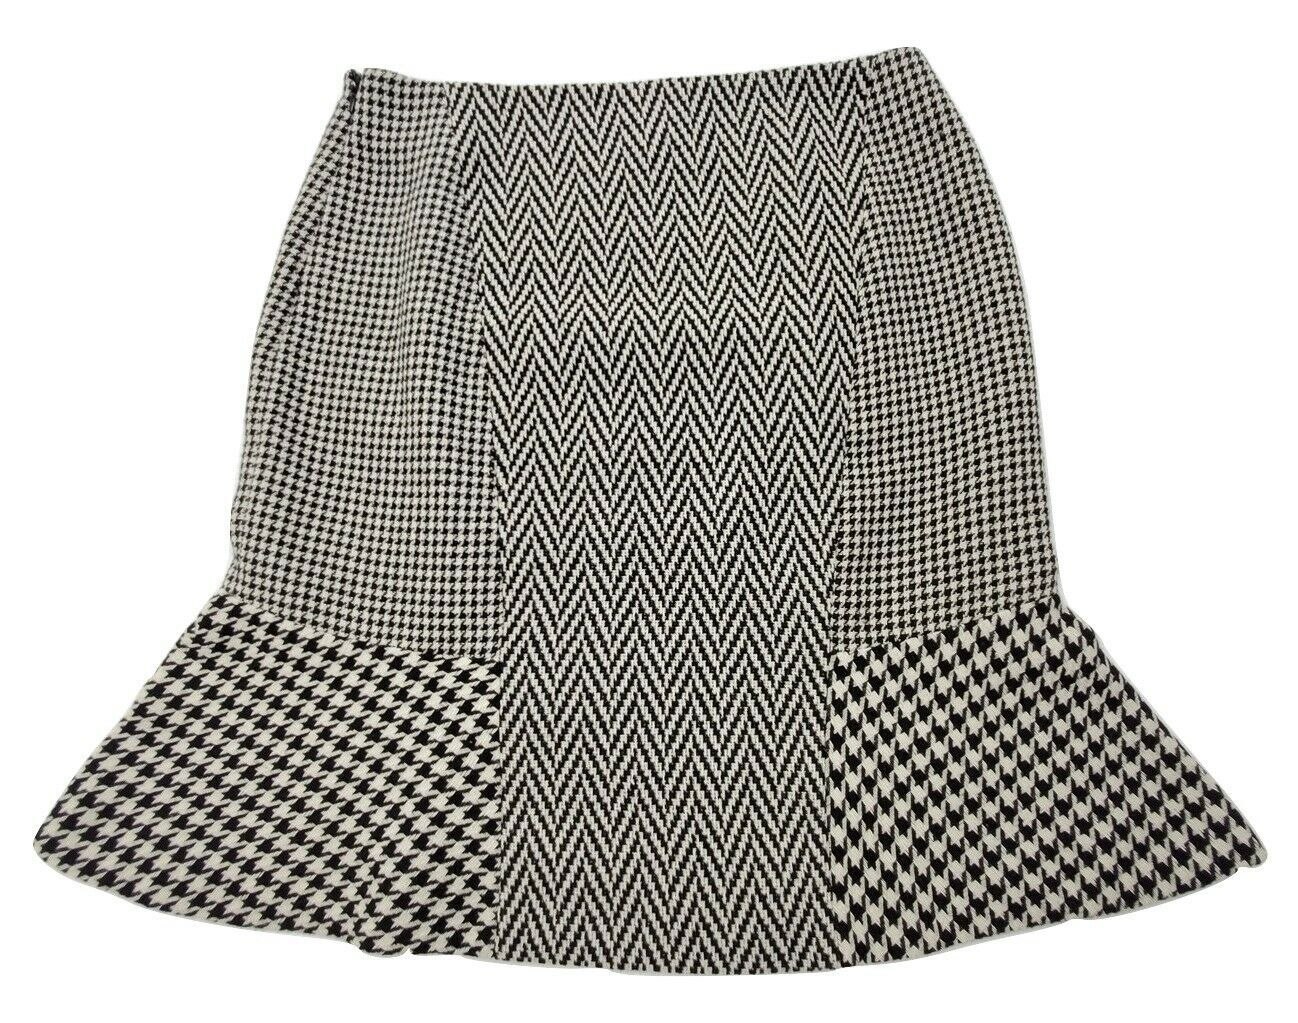 Primary image for Ann Taylor Women's Skirt Size 6 Black White Lined Herringbone Pattern